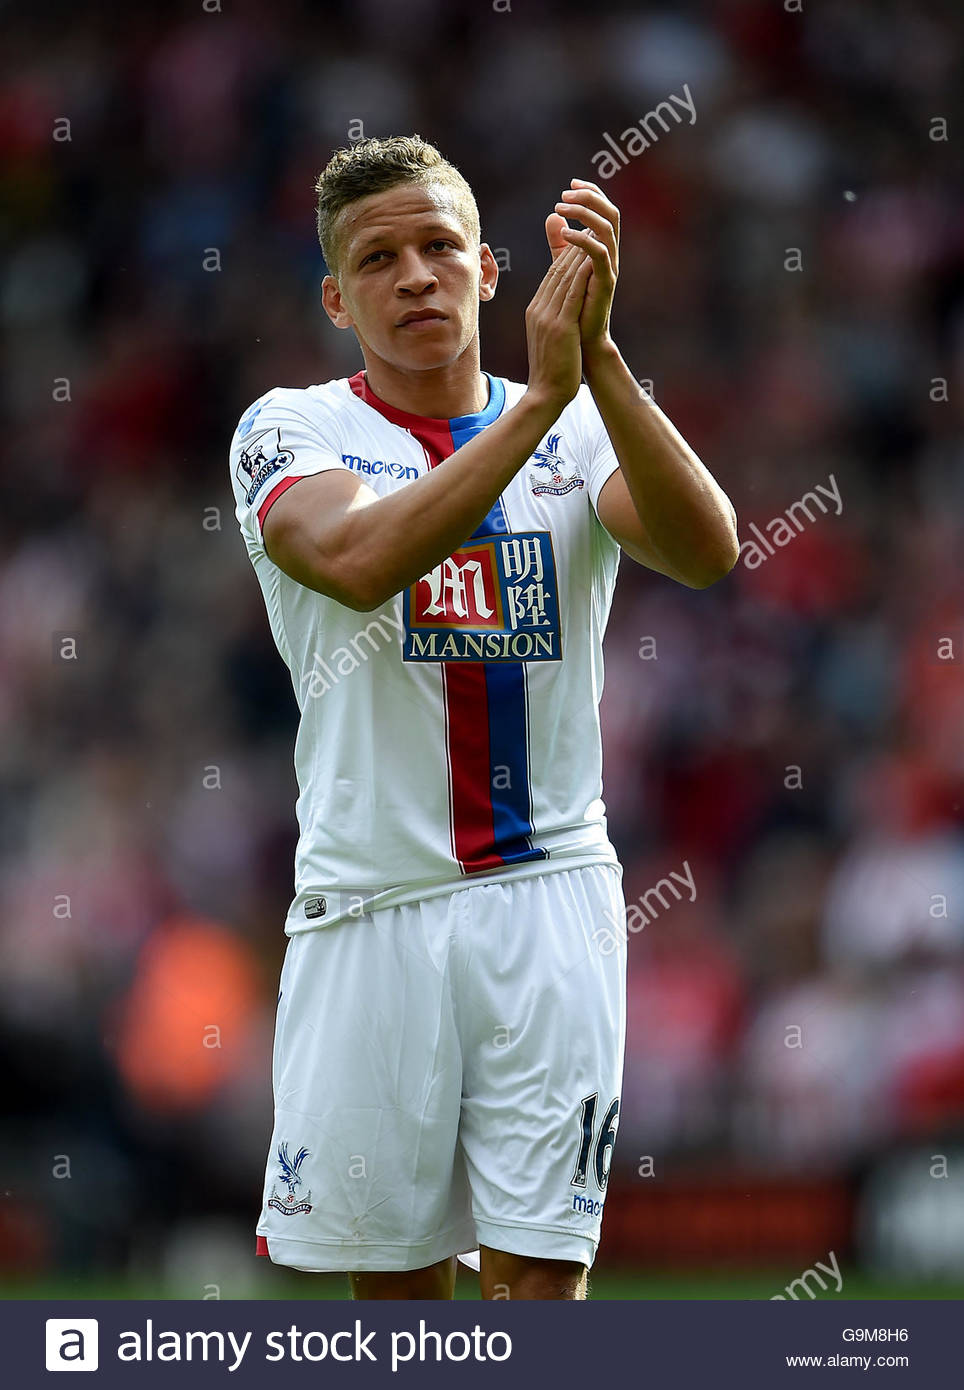 File photo dated 15-05-2016 of Crystal Palace's Dwight Gayle. - Stock Image